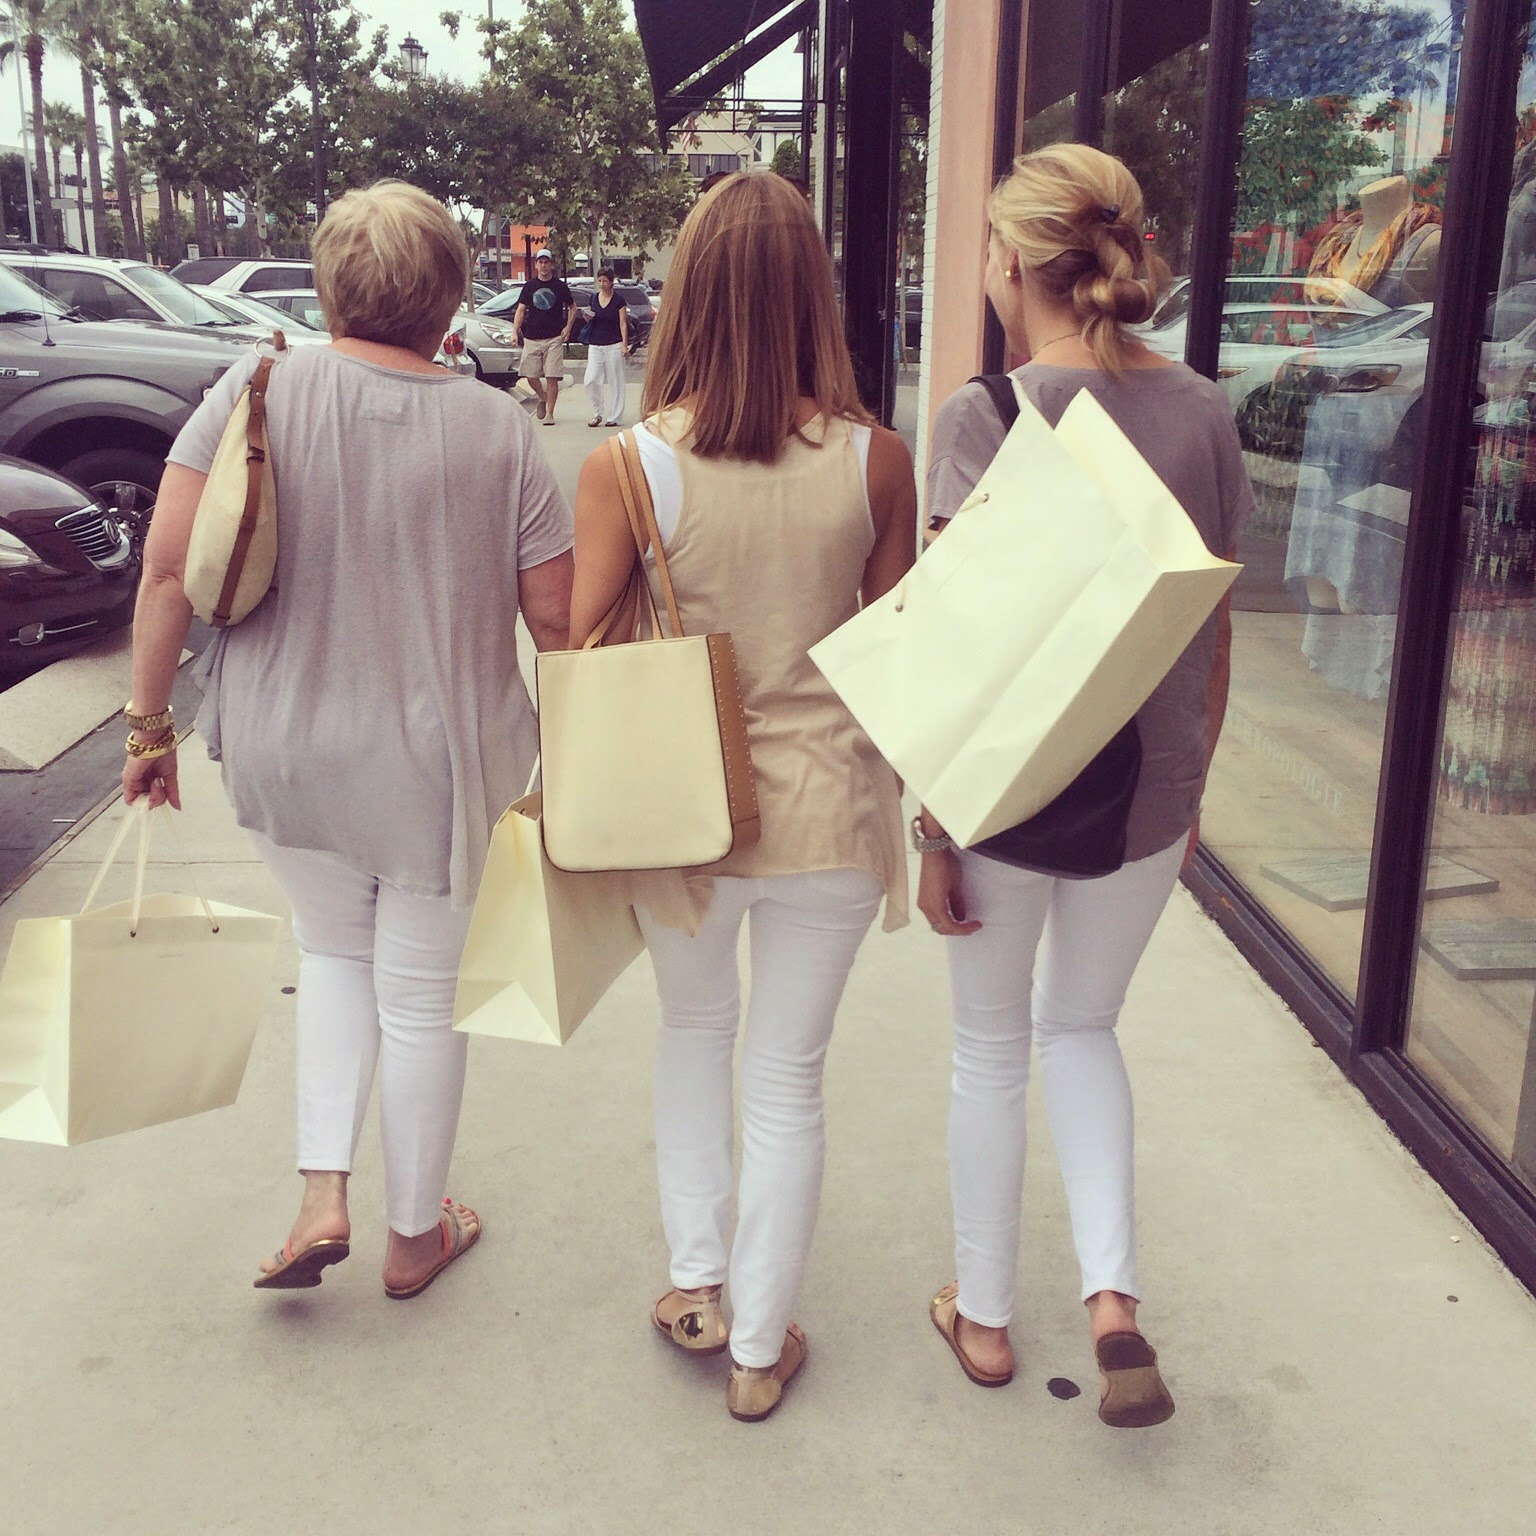 Shopping, Anthropologie, White Jeans, Sisters, Aunt, Cousin, Highland Village, Houston, TX